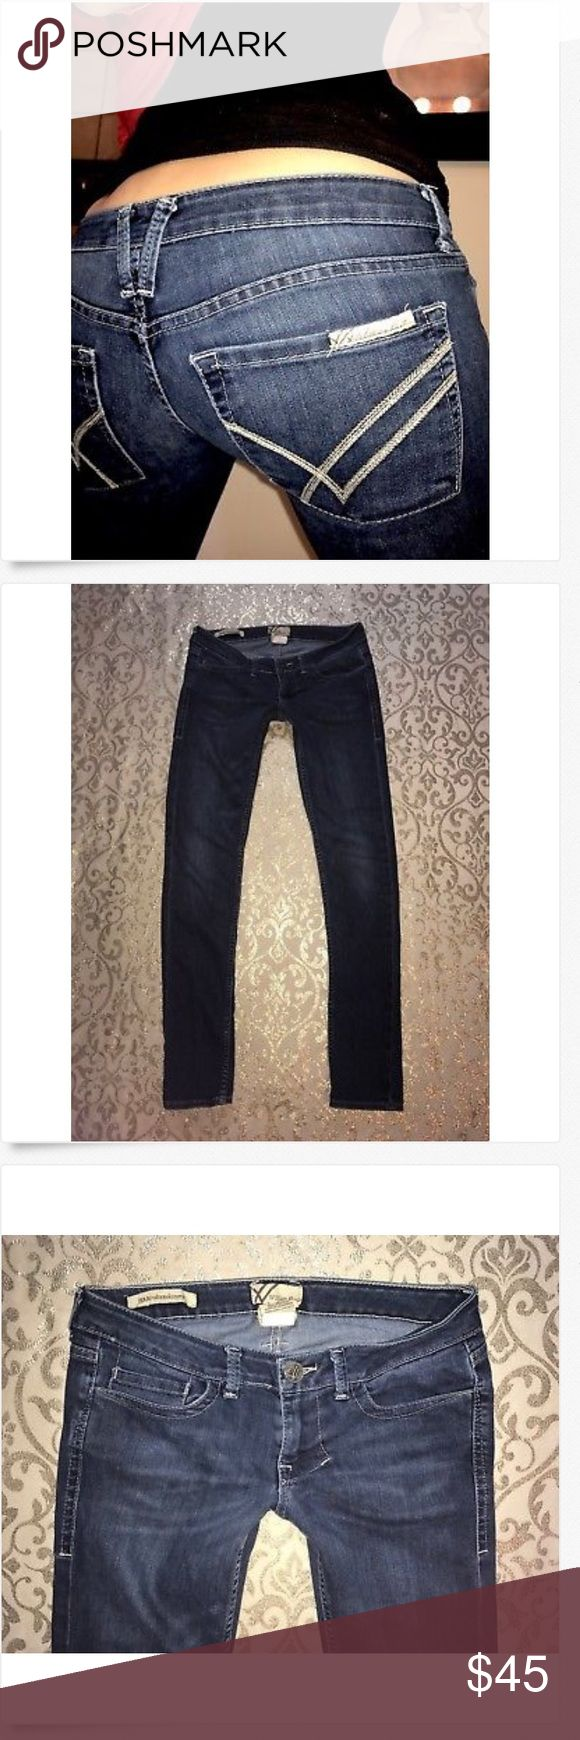 William Rast Low Rise JERRI Ultra SKINNY Leg Jeans William Rast Low Rise JERRI Ultra SKINNY Leg Jeans! Great Used! 27 x 32 75%% cotton & 25% polyester  15.5 across & 6 rise William Rast Jeans Skinny